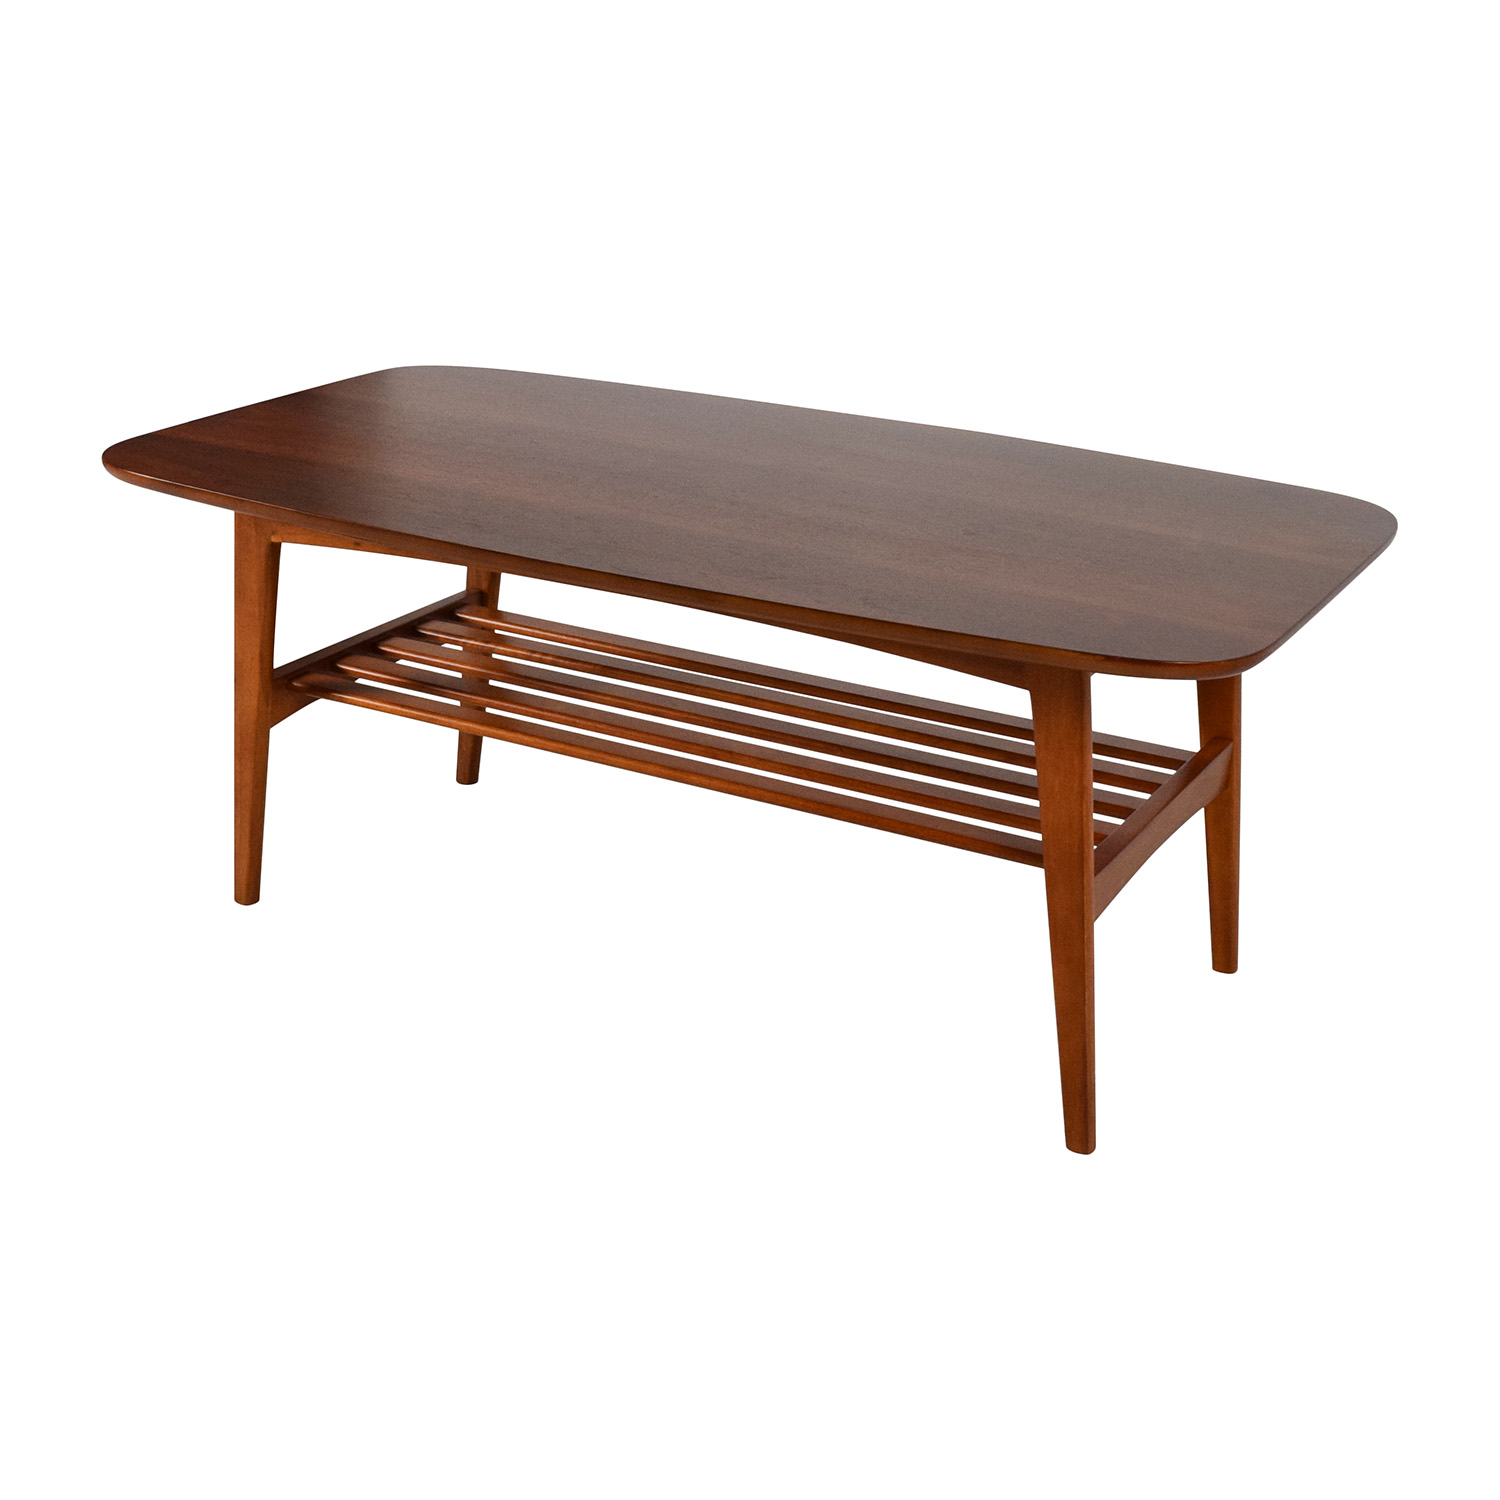 Dining Table With Shelf Underneath 48 Off Brown Wood Coffee Table With Shelf Tables